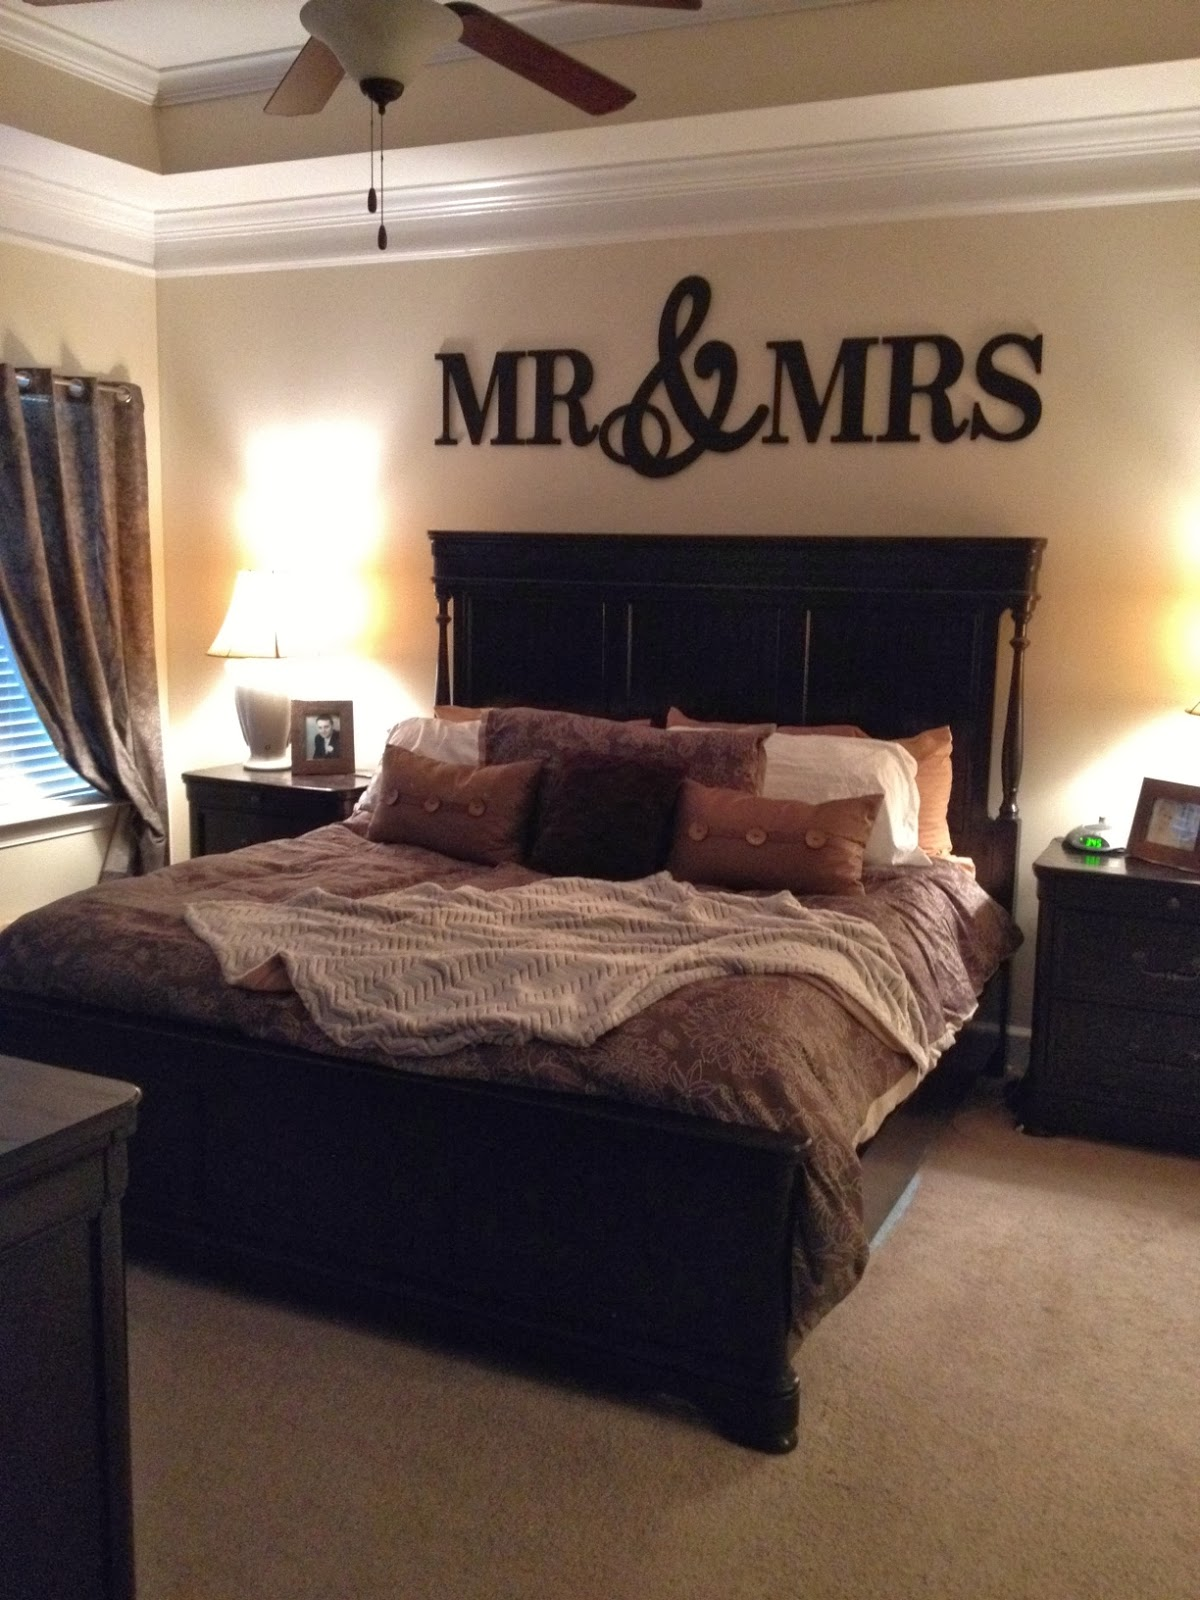 Simply the simmons mr mrs Master bedroom art above bed